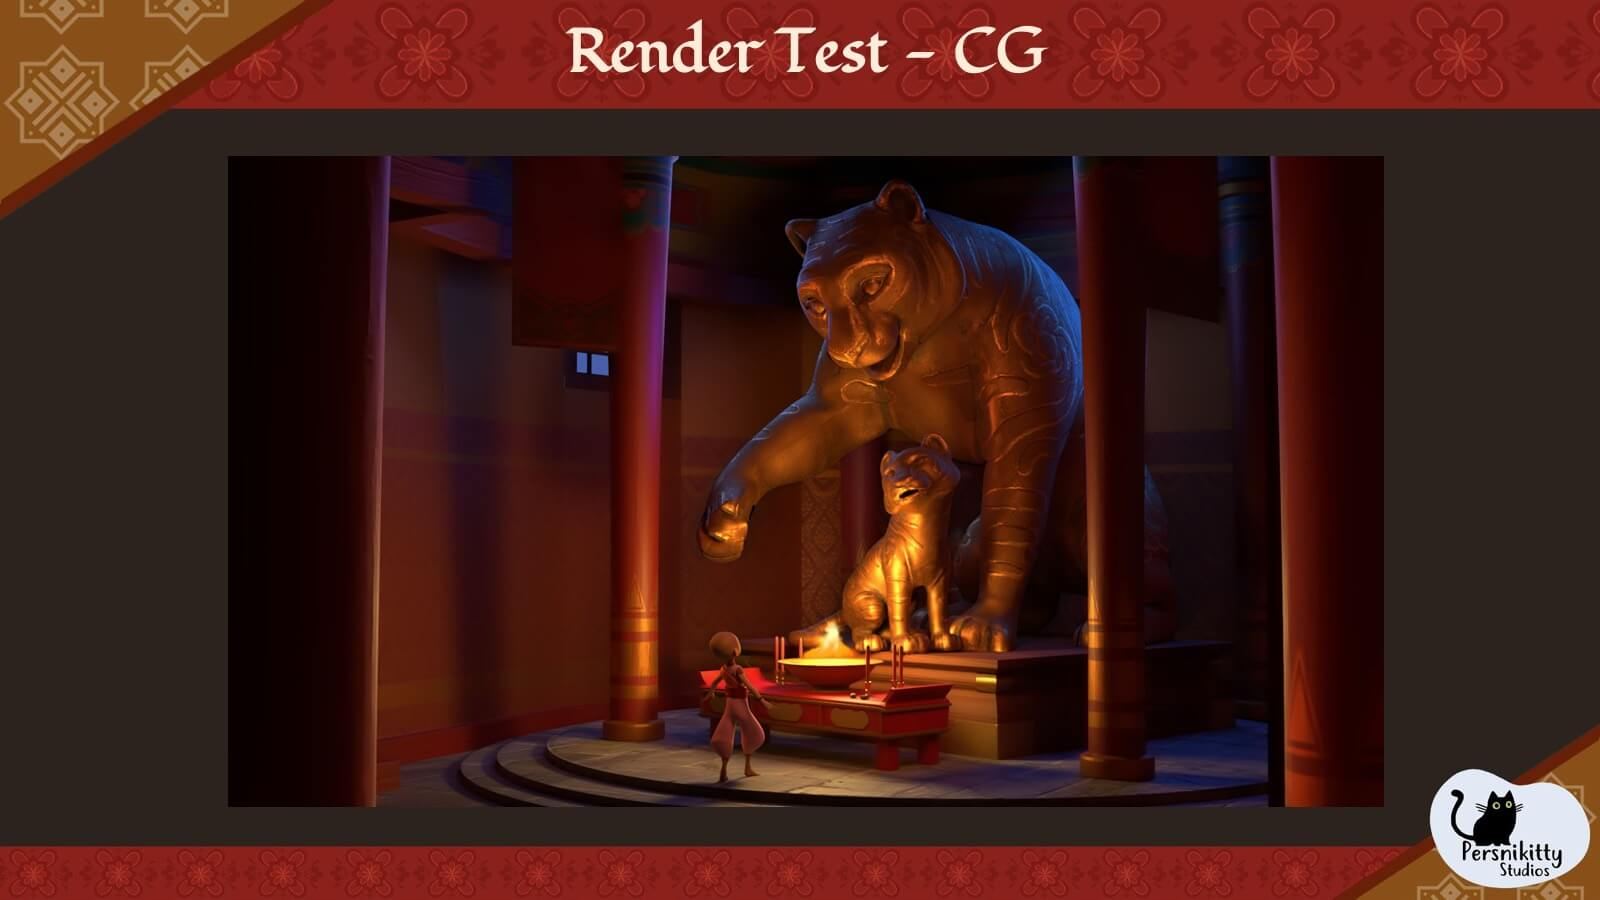 A slide displaying a CG render test from a scene in the film.